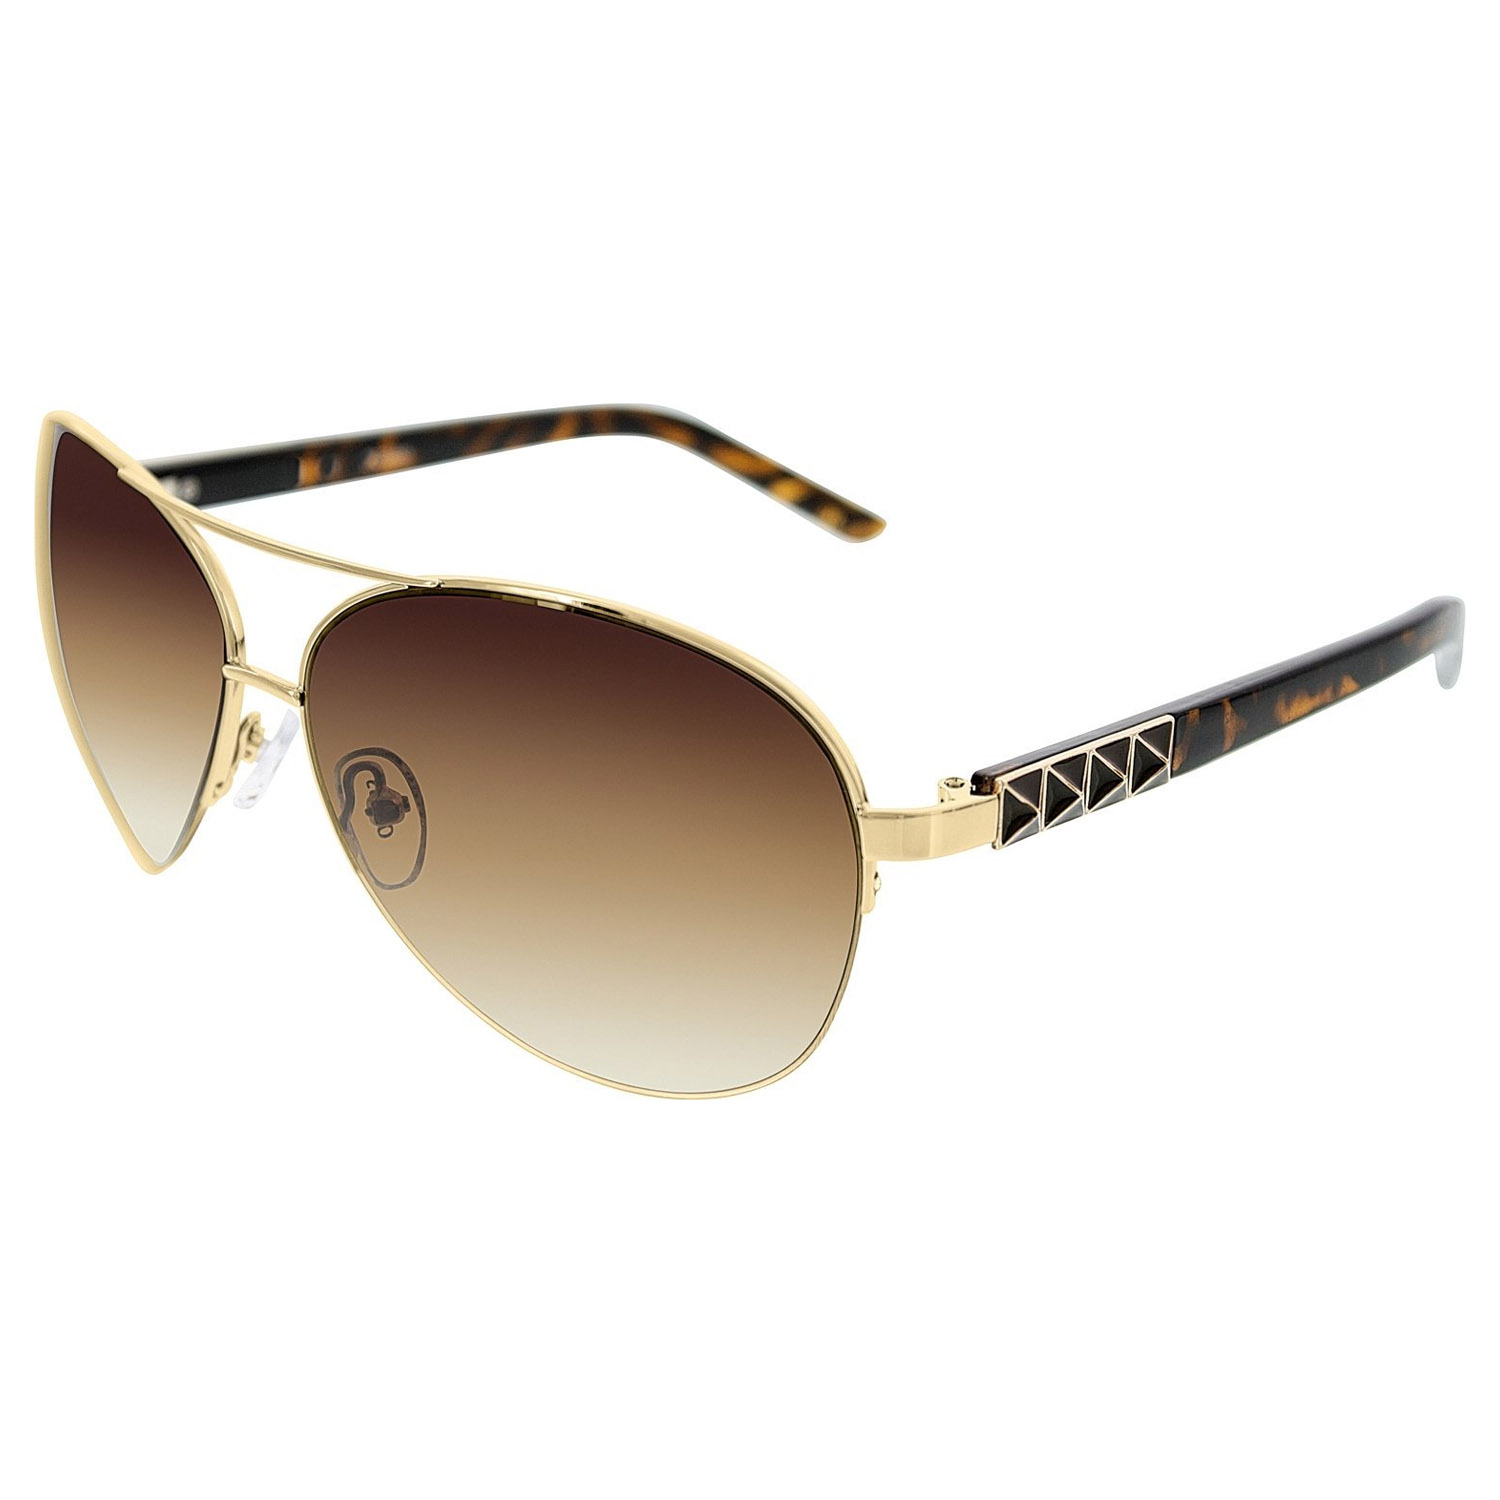 Guess GU7329-H73 Tortoise Frames Brown Gradient Lens